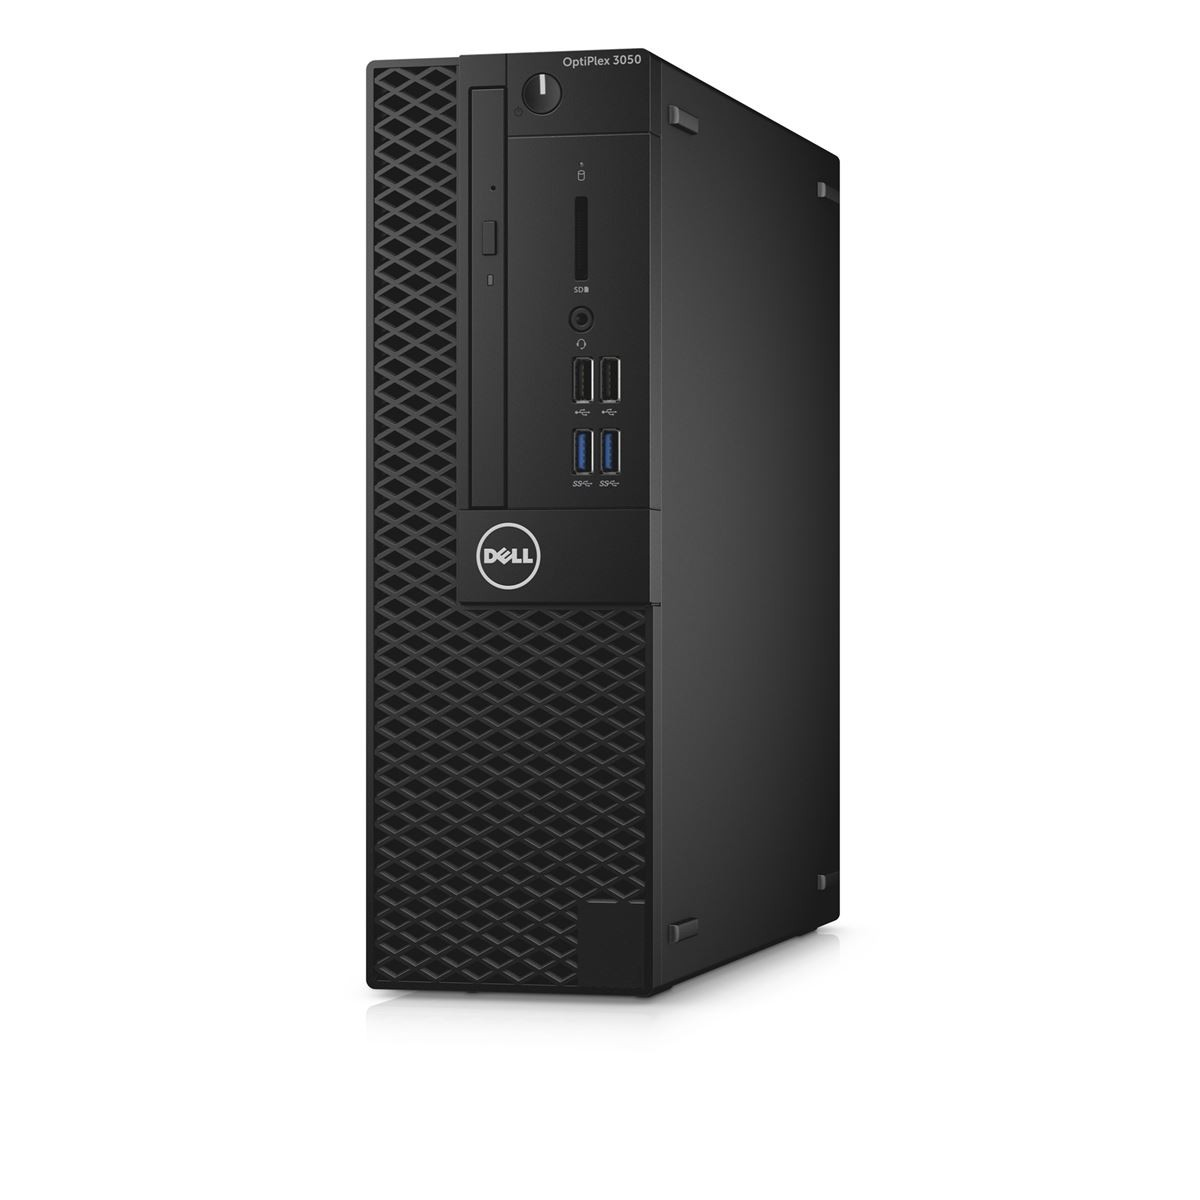 Bureau Pc Fixe Ordinateur De Bureau Dell Optiplex 3050 Small Form Factor